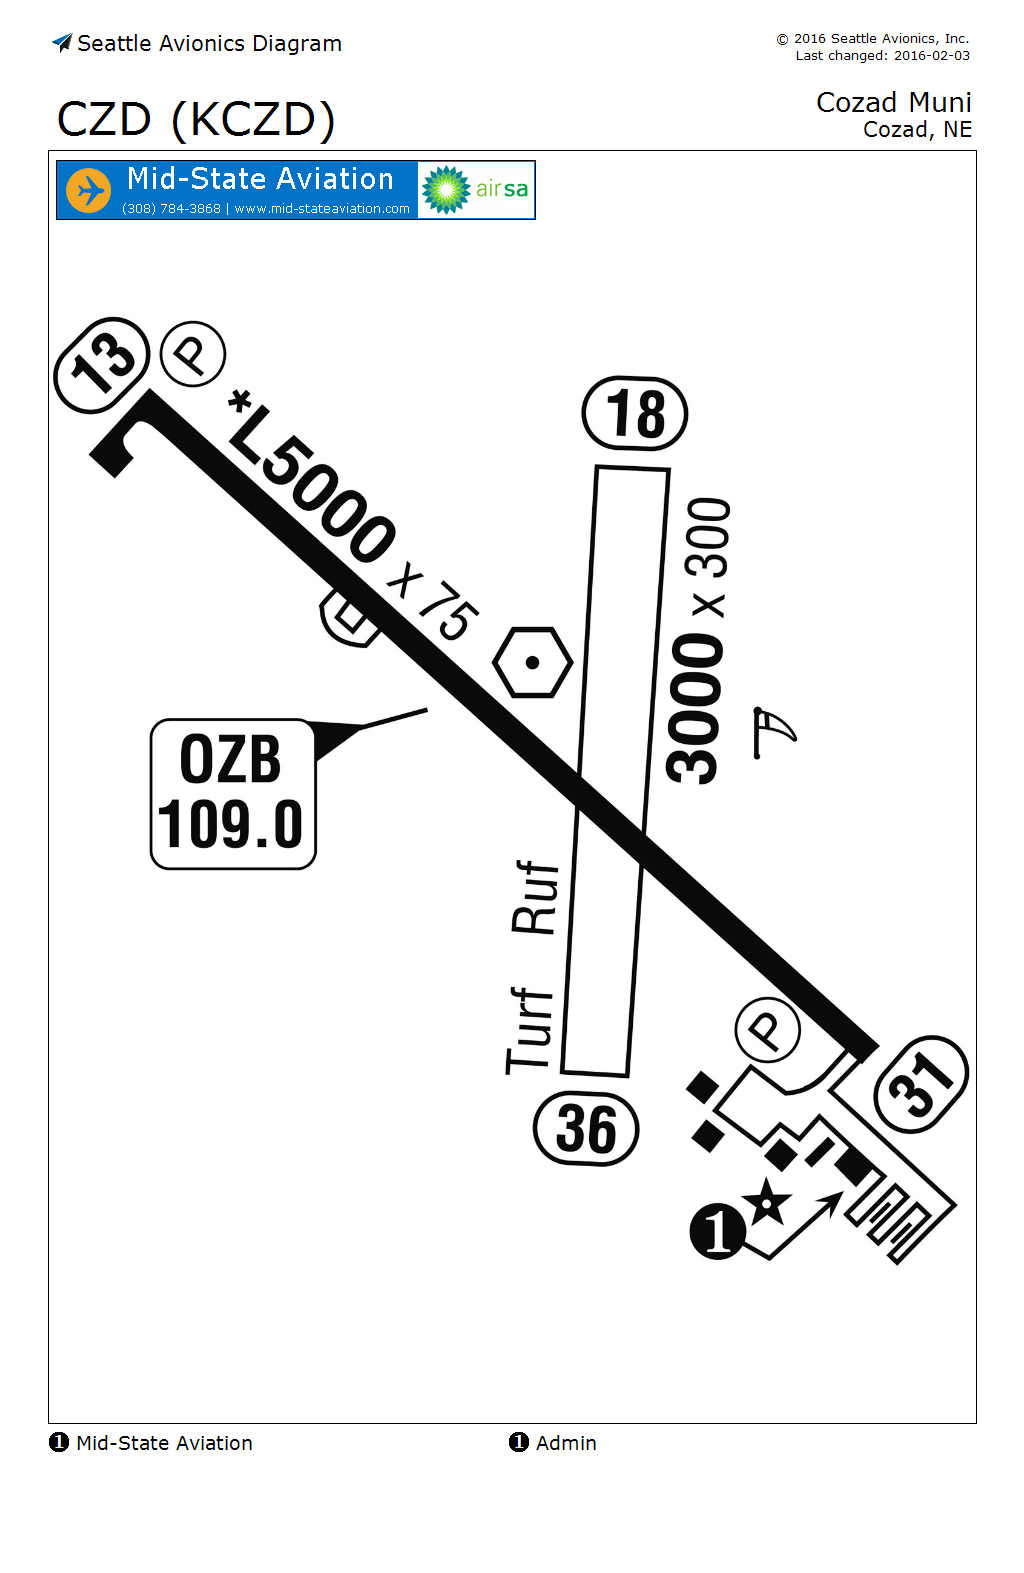 Seattle Avionics Airport Guide